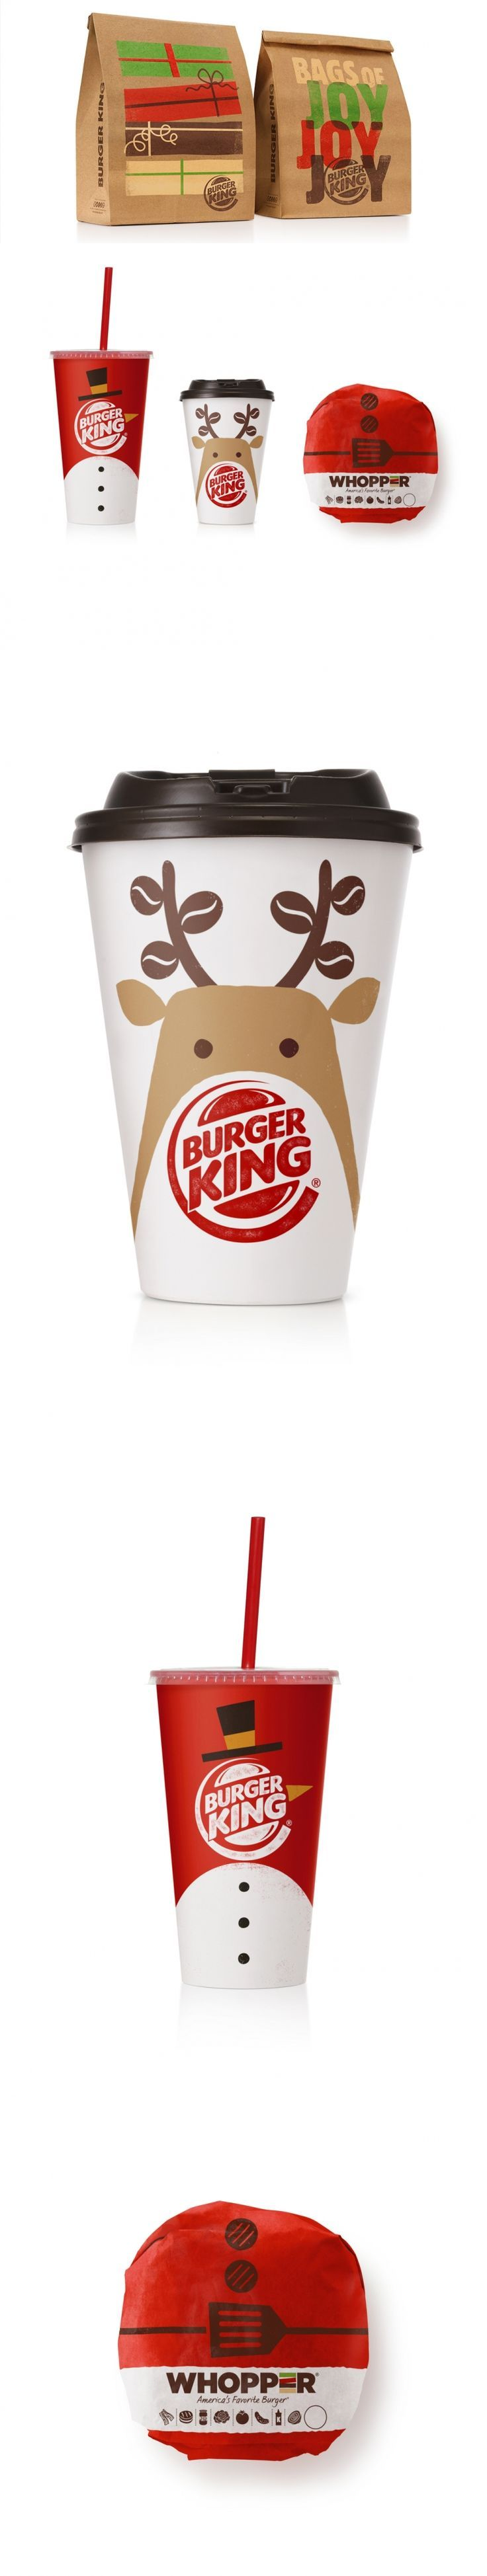 Burger King Holiday Packaging — The Dieline | Packaging & Branding Design & Innovation News